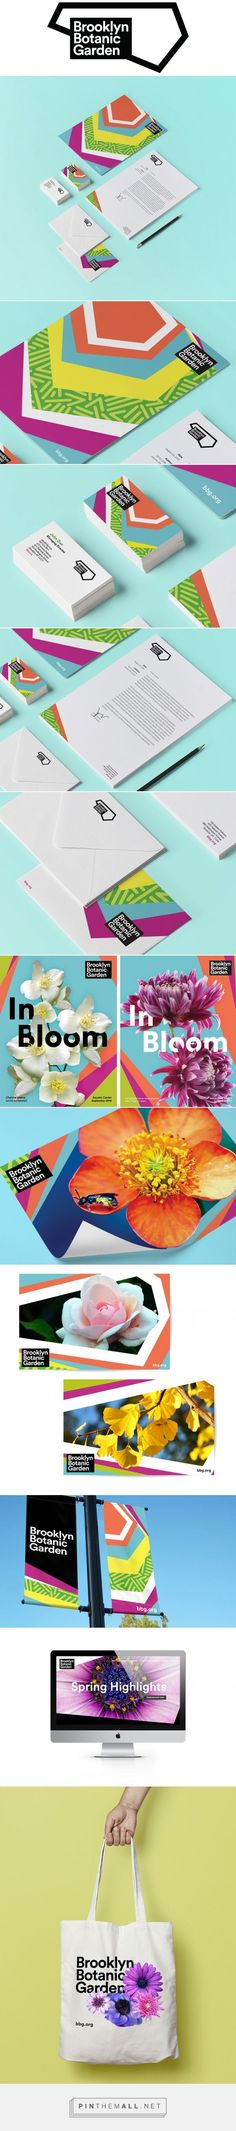 Brooklyn Botanic Garden on Behance | Fivestar Branding – Design and Branding Agency & Inspiration Gallery. The UX Blog podcast is also available on iTunes.